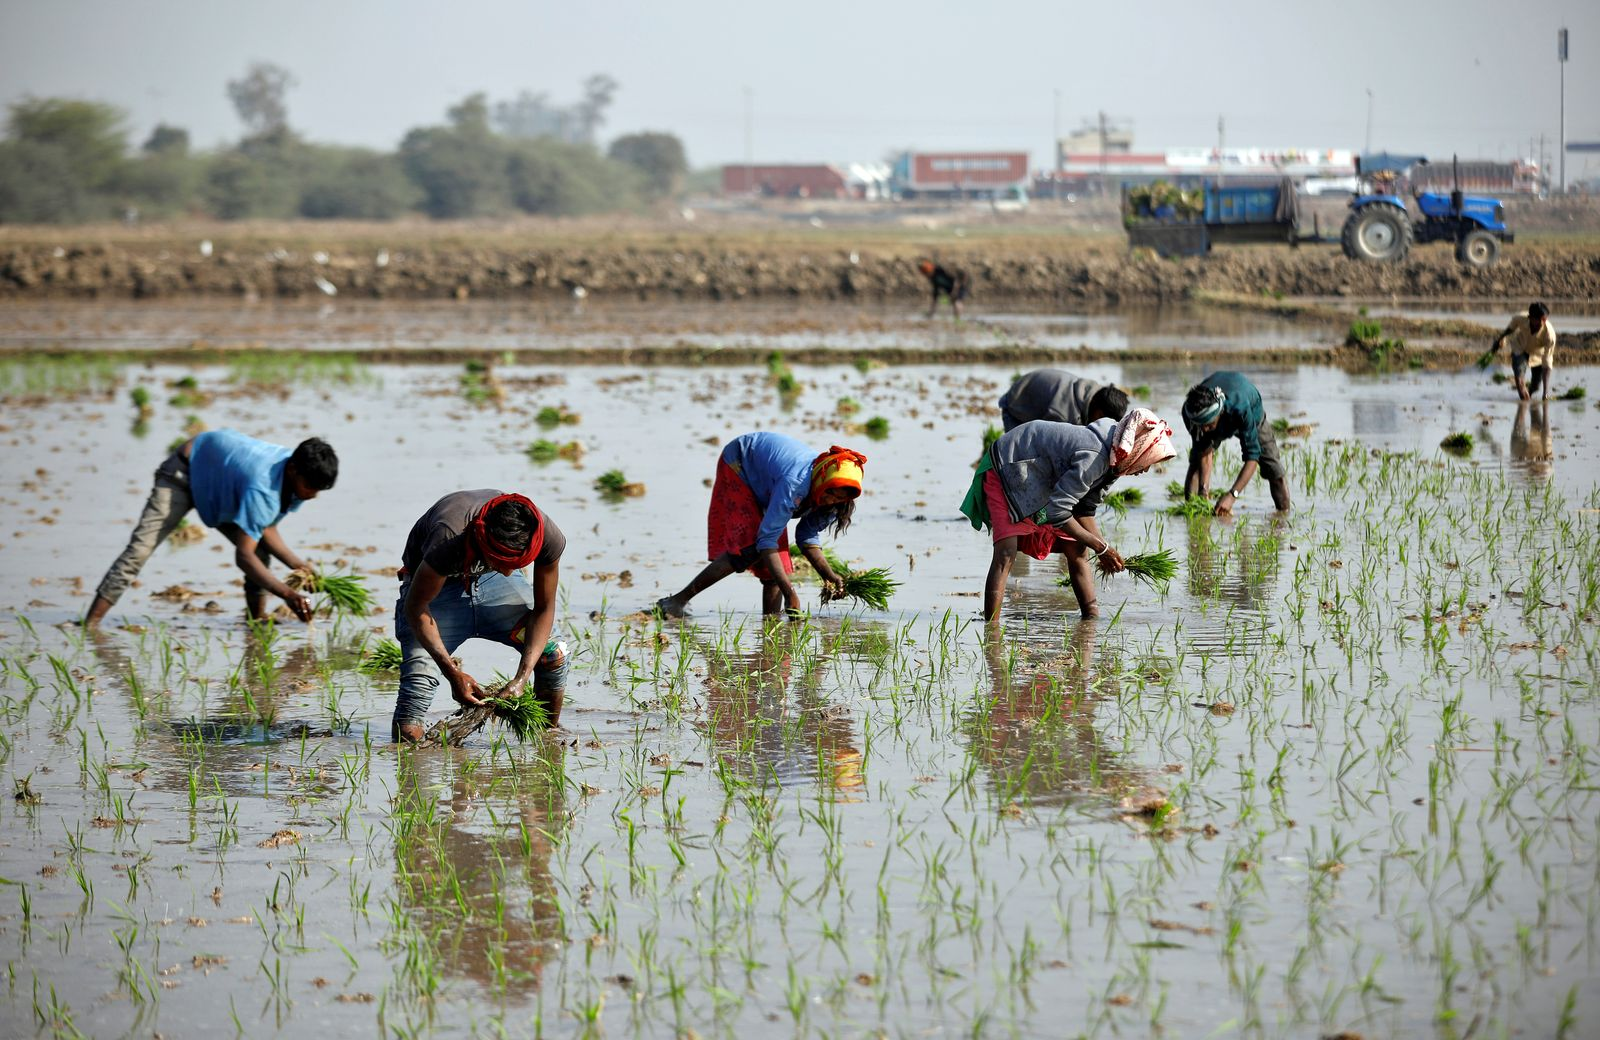 Farmers plant saplings in a paddy field on the outskirts of Ahmedabad